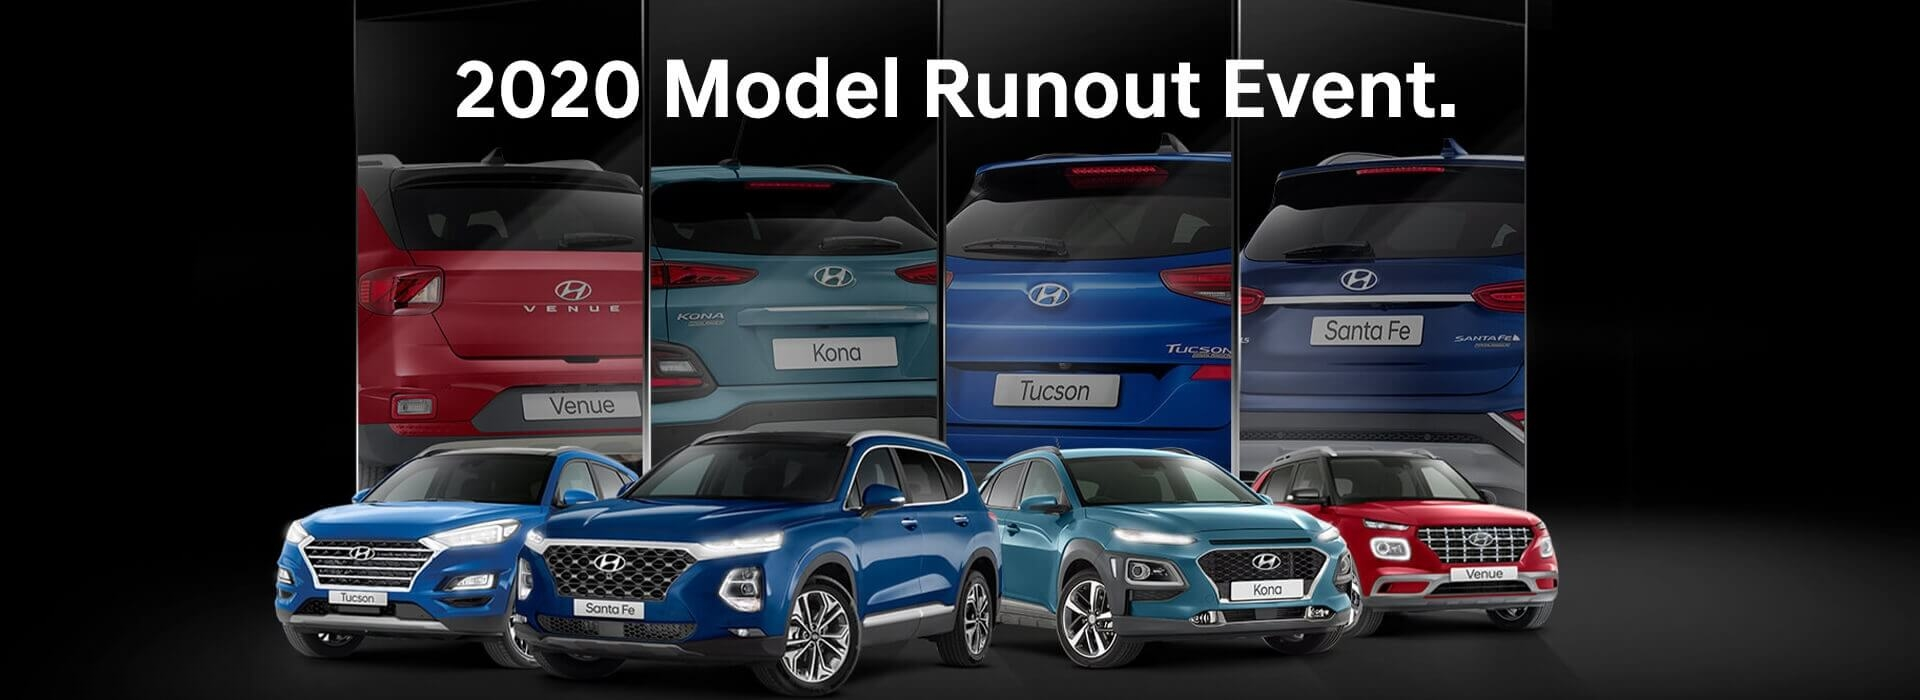 2020 Model Runout Event